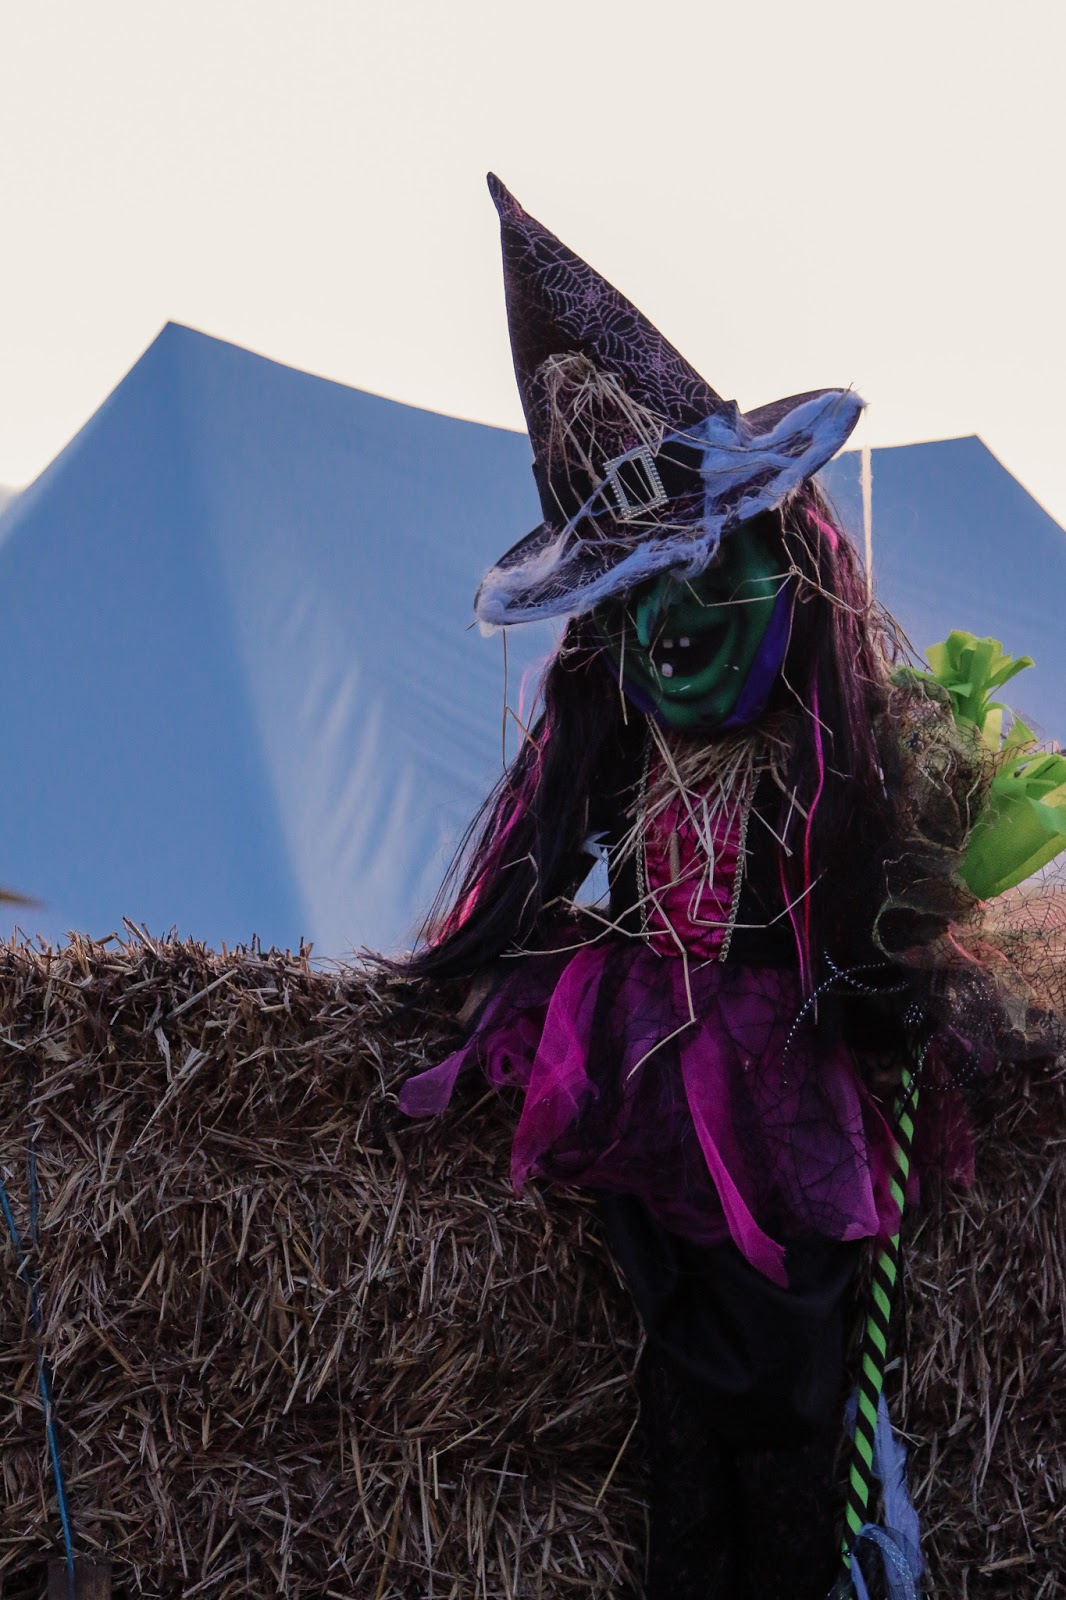 Close up of a witch doll in the hay maze at M&D's pumpkin festival